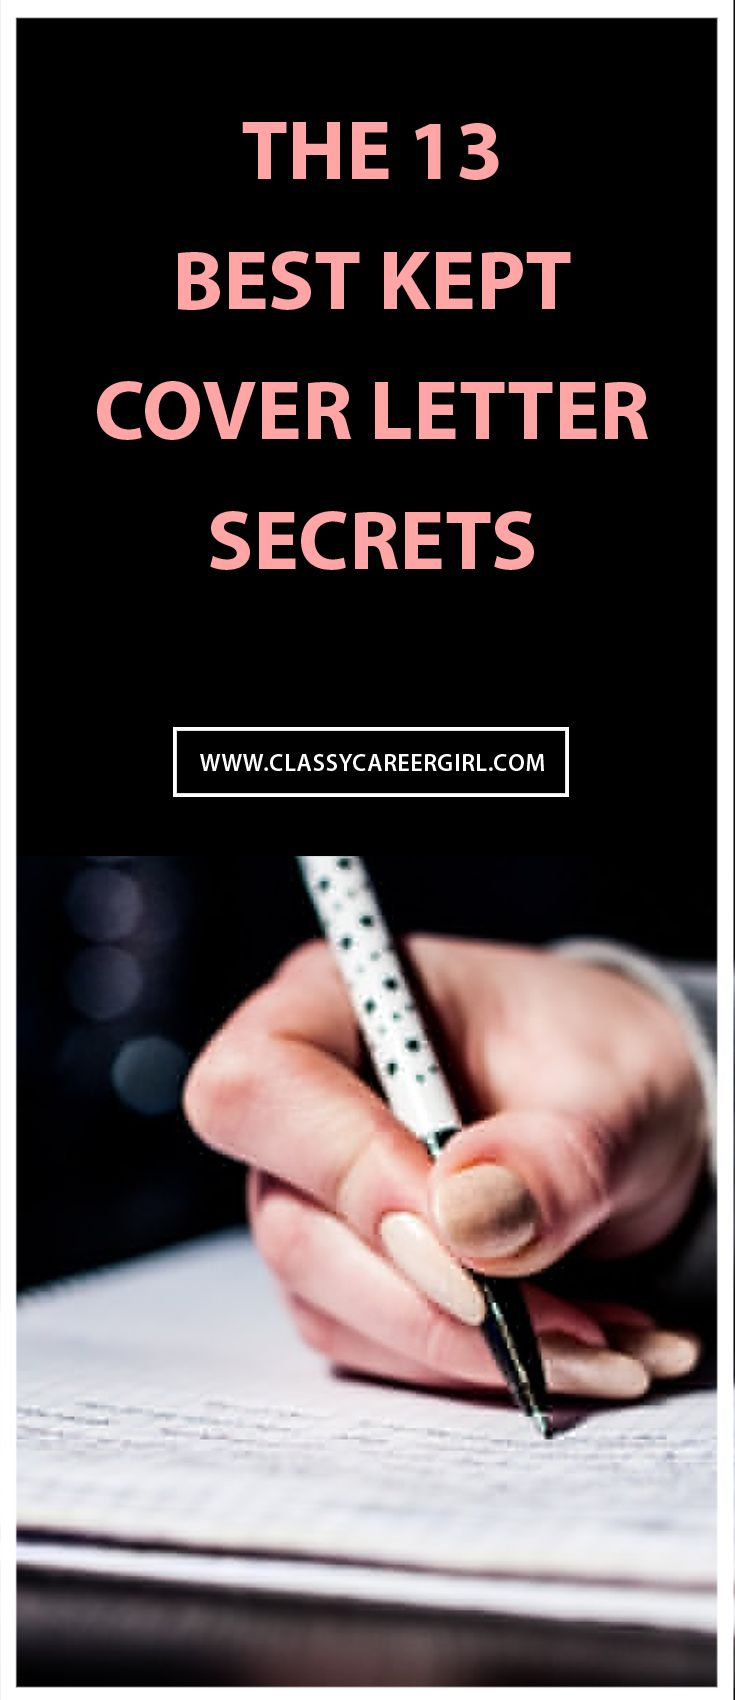 The 13 Best Kept Cover Letter Secrets 108